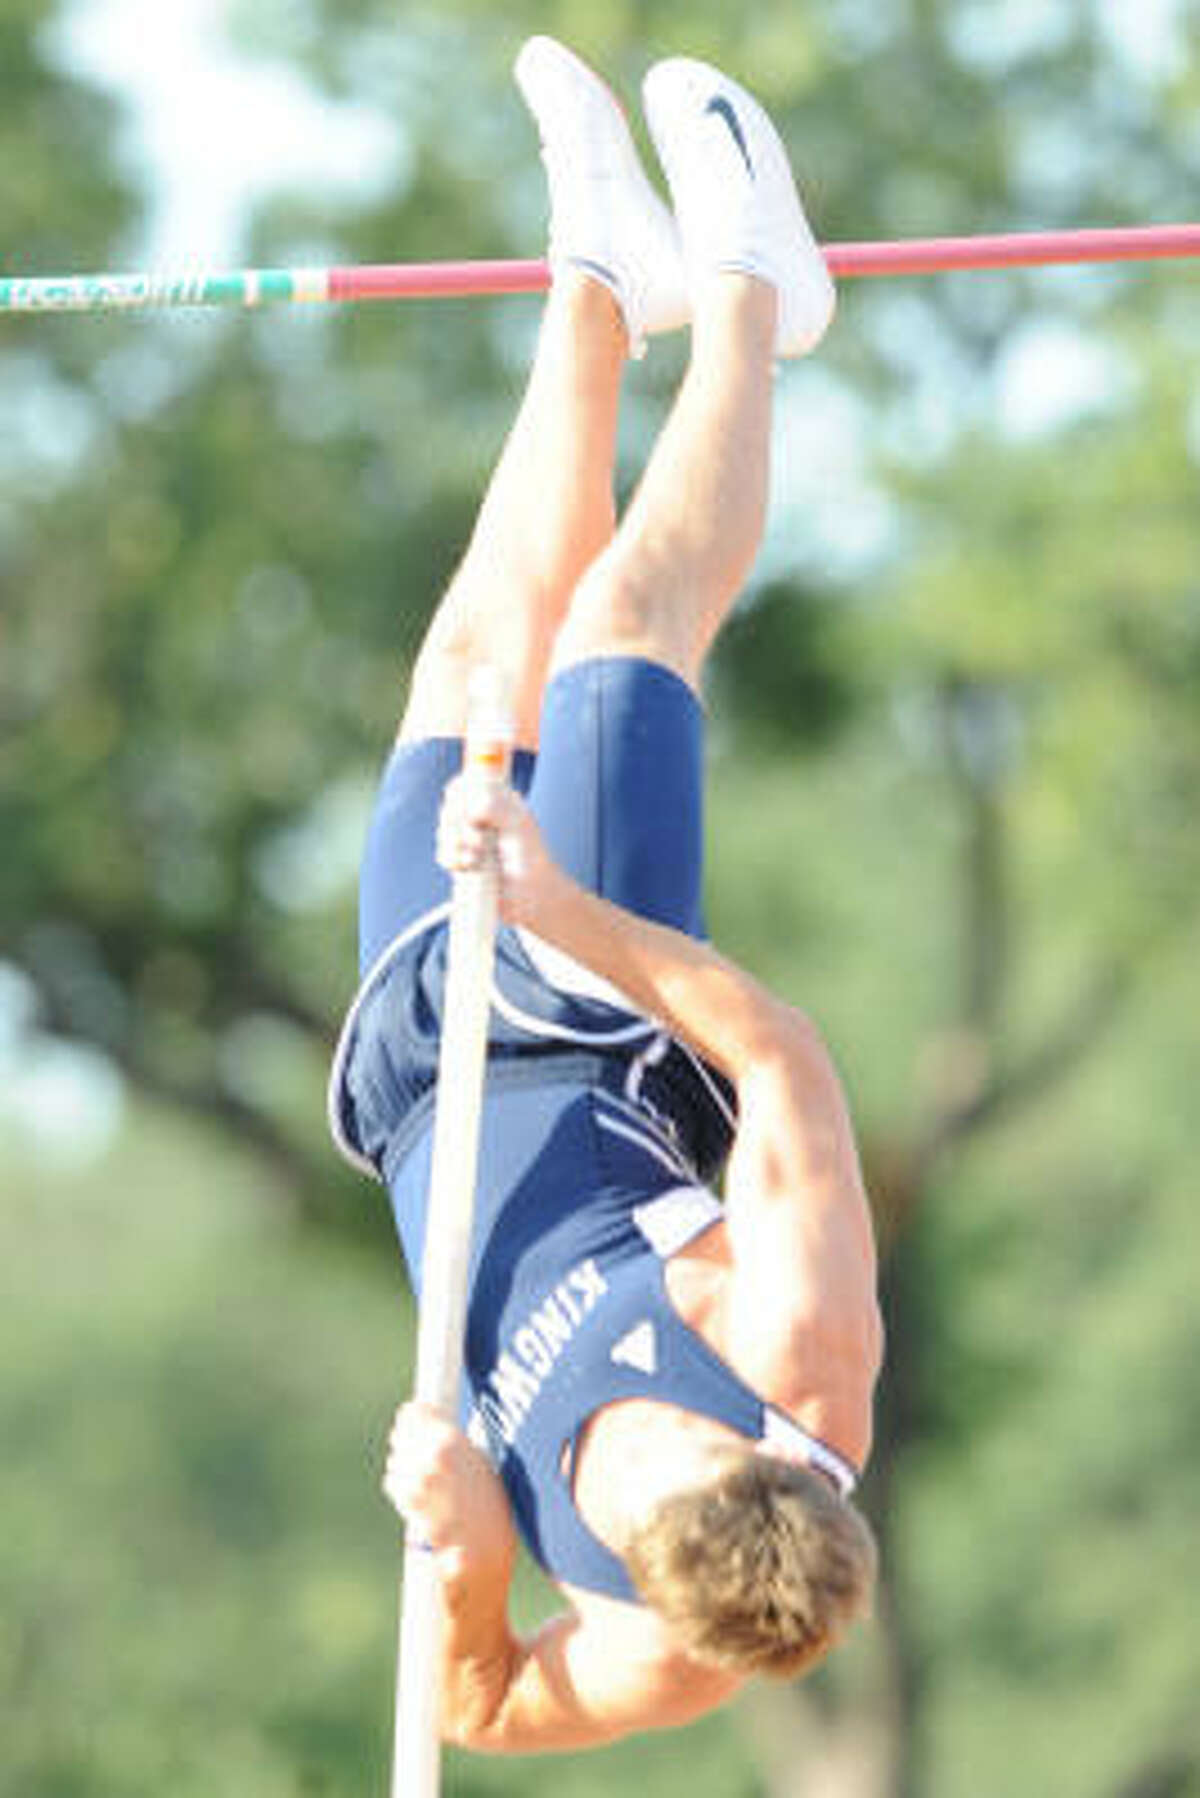 State track meet: Kingwood's Greg Lupton competes in the pole vault during the state track meet in Austin.